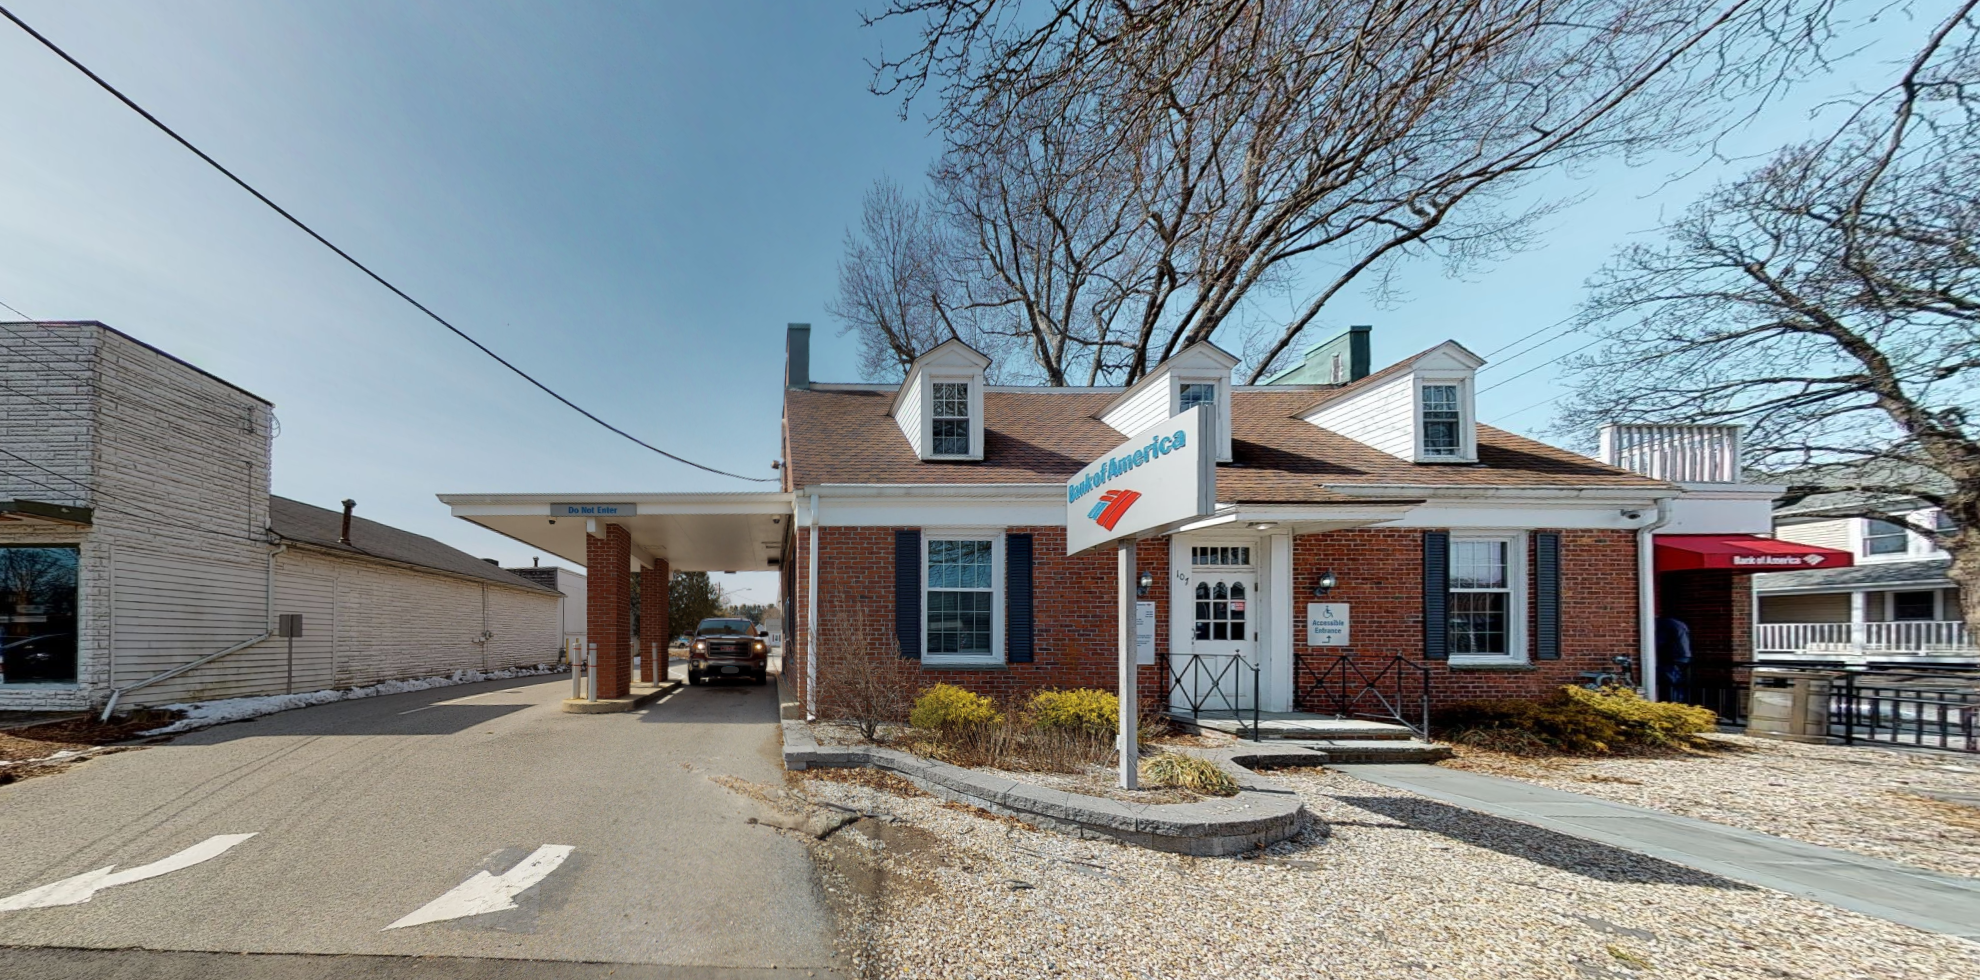 Bank of America financial center with drive-thru ATM and teller | 107 Main St, Old Saybrook, CT 06475